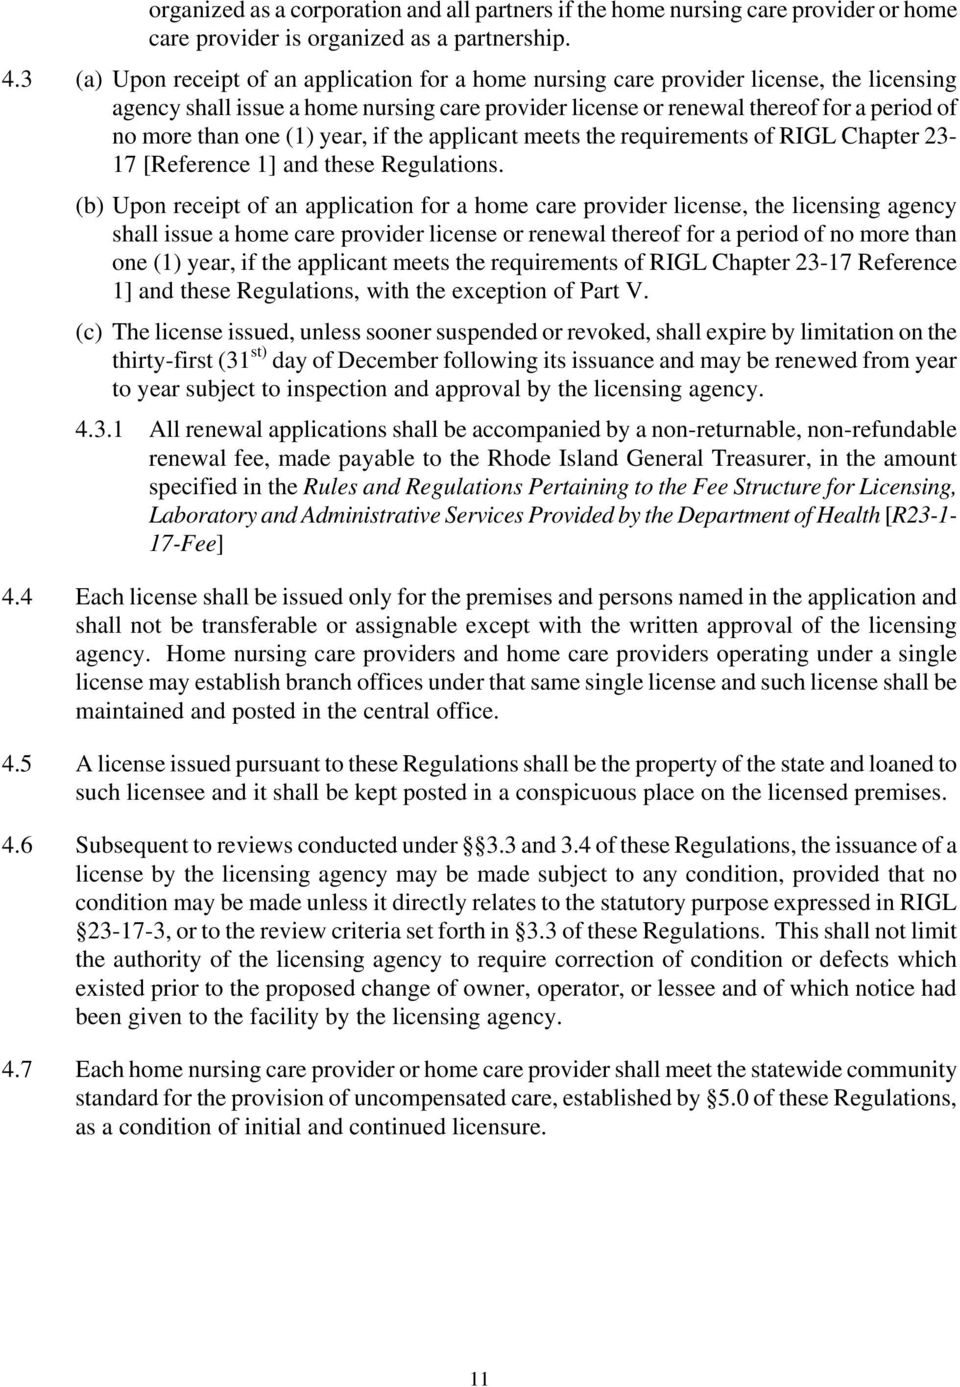 one (1) year, if the applicant meets the requirements of RIGL Chapter 23-17 [Reference 1] and these Regulations.